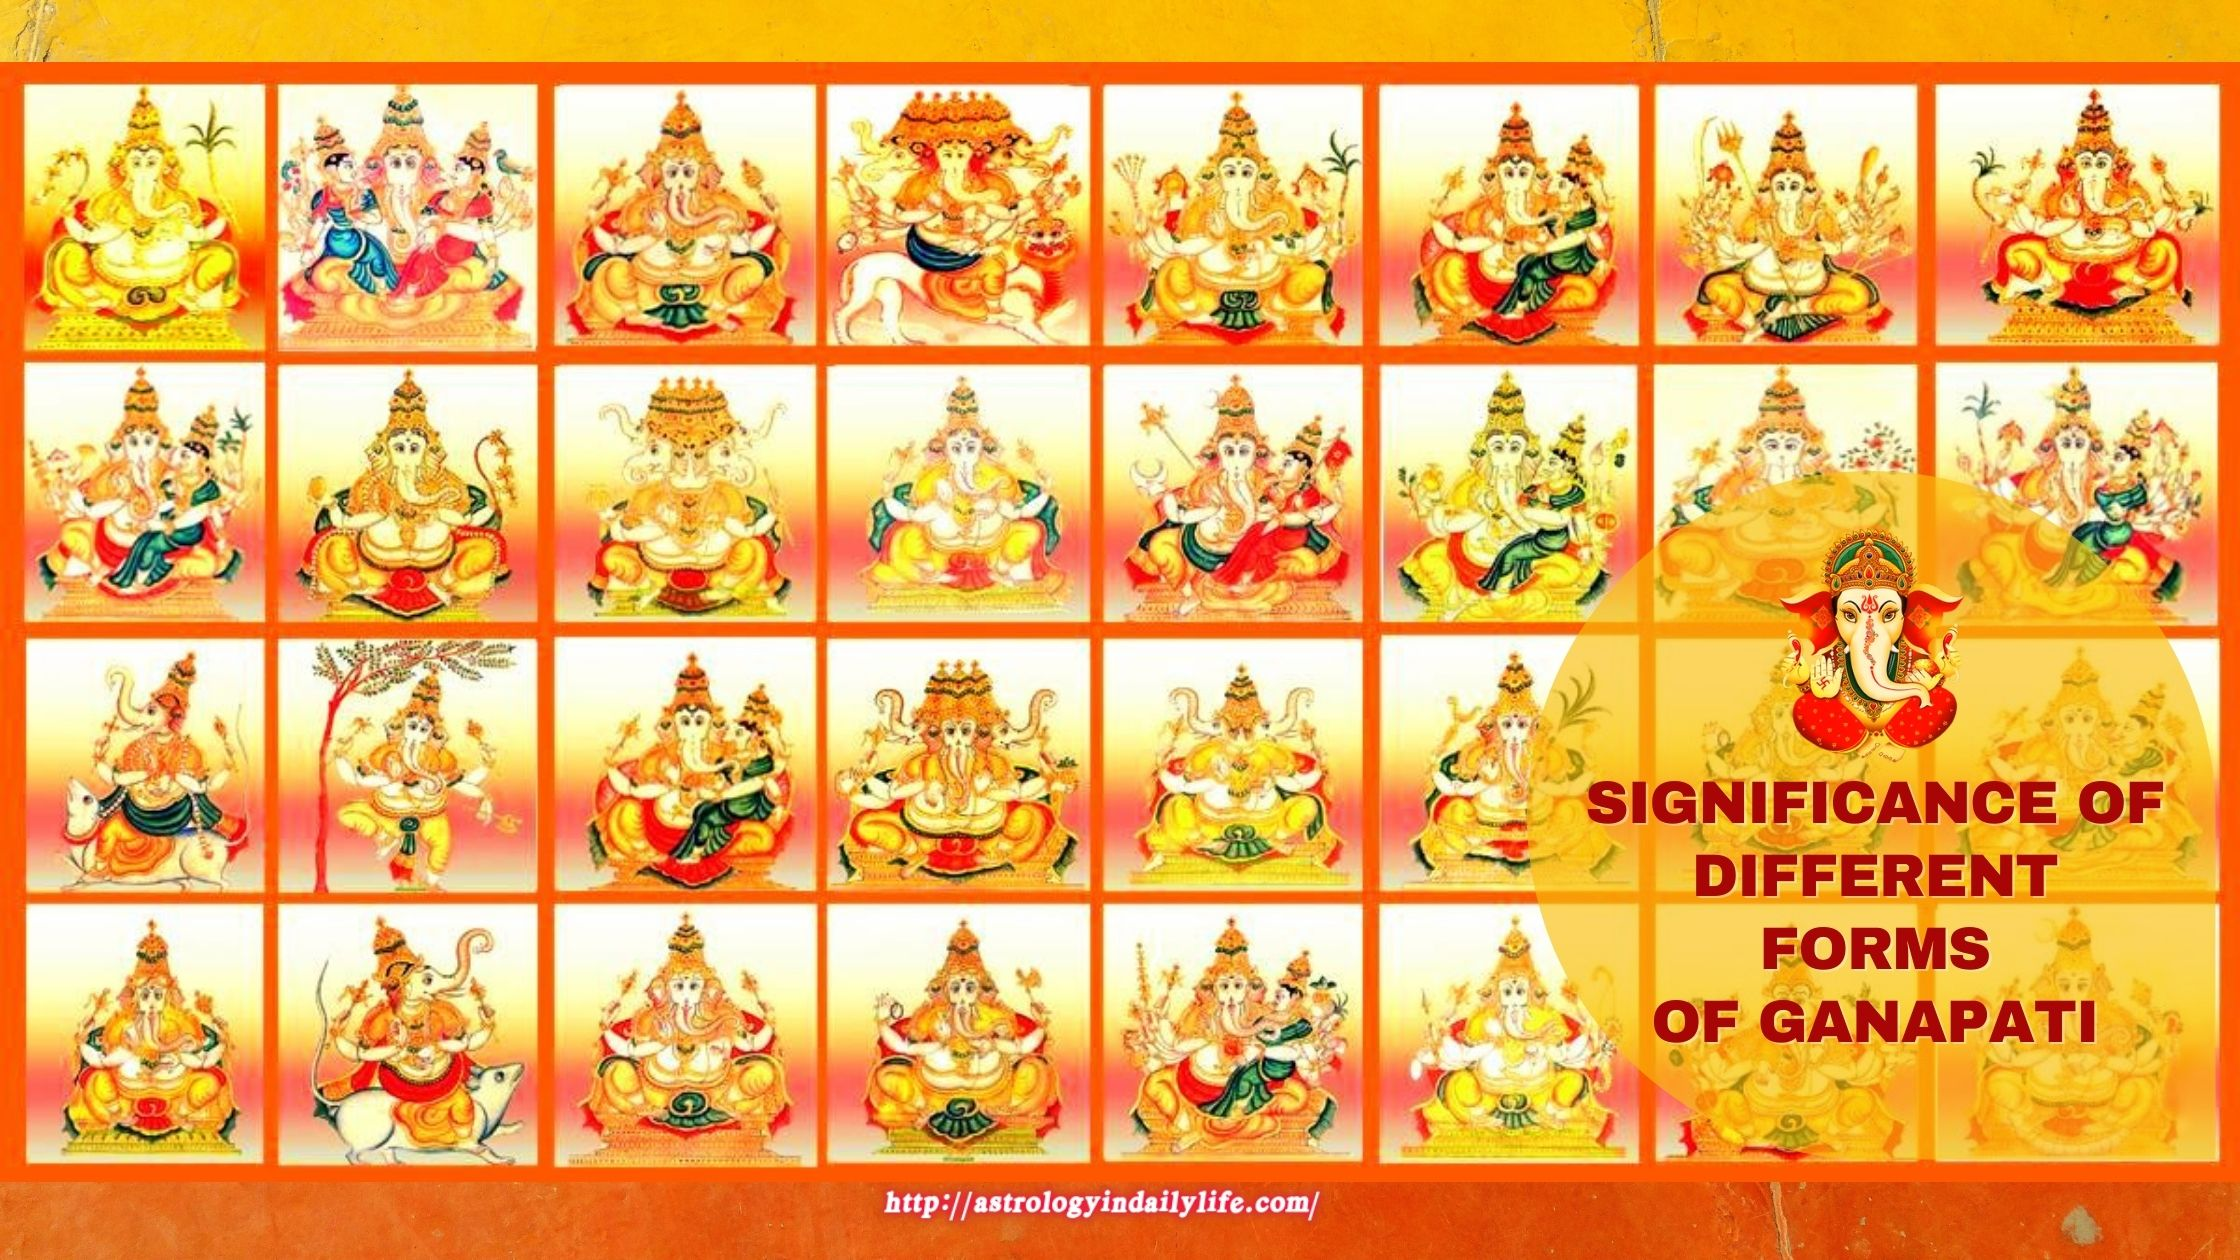 DIFFERENT FORMS OF GANESHA: MEANING & SIGNIFICANCE